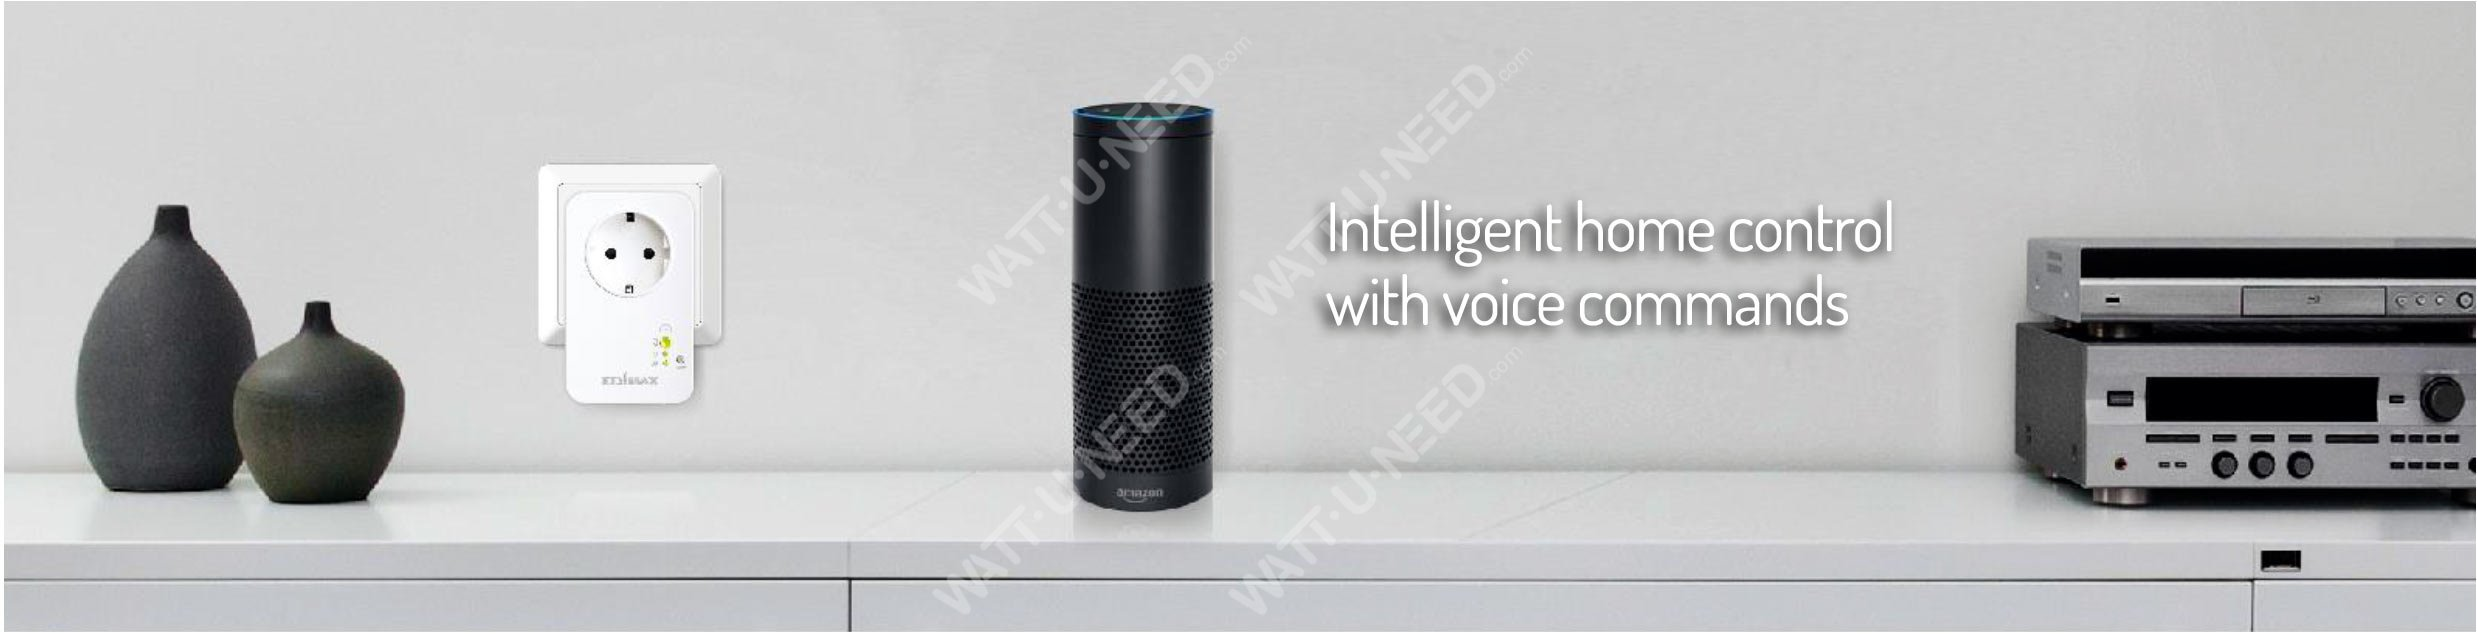 Intelligent home control with voice commands